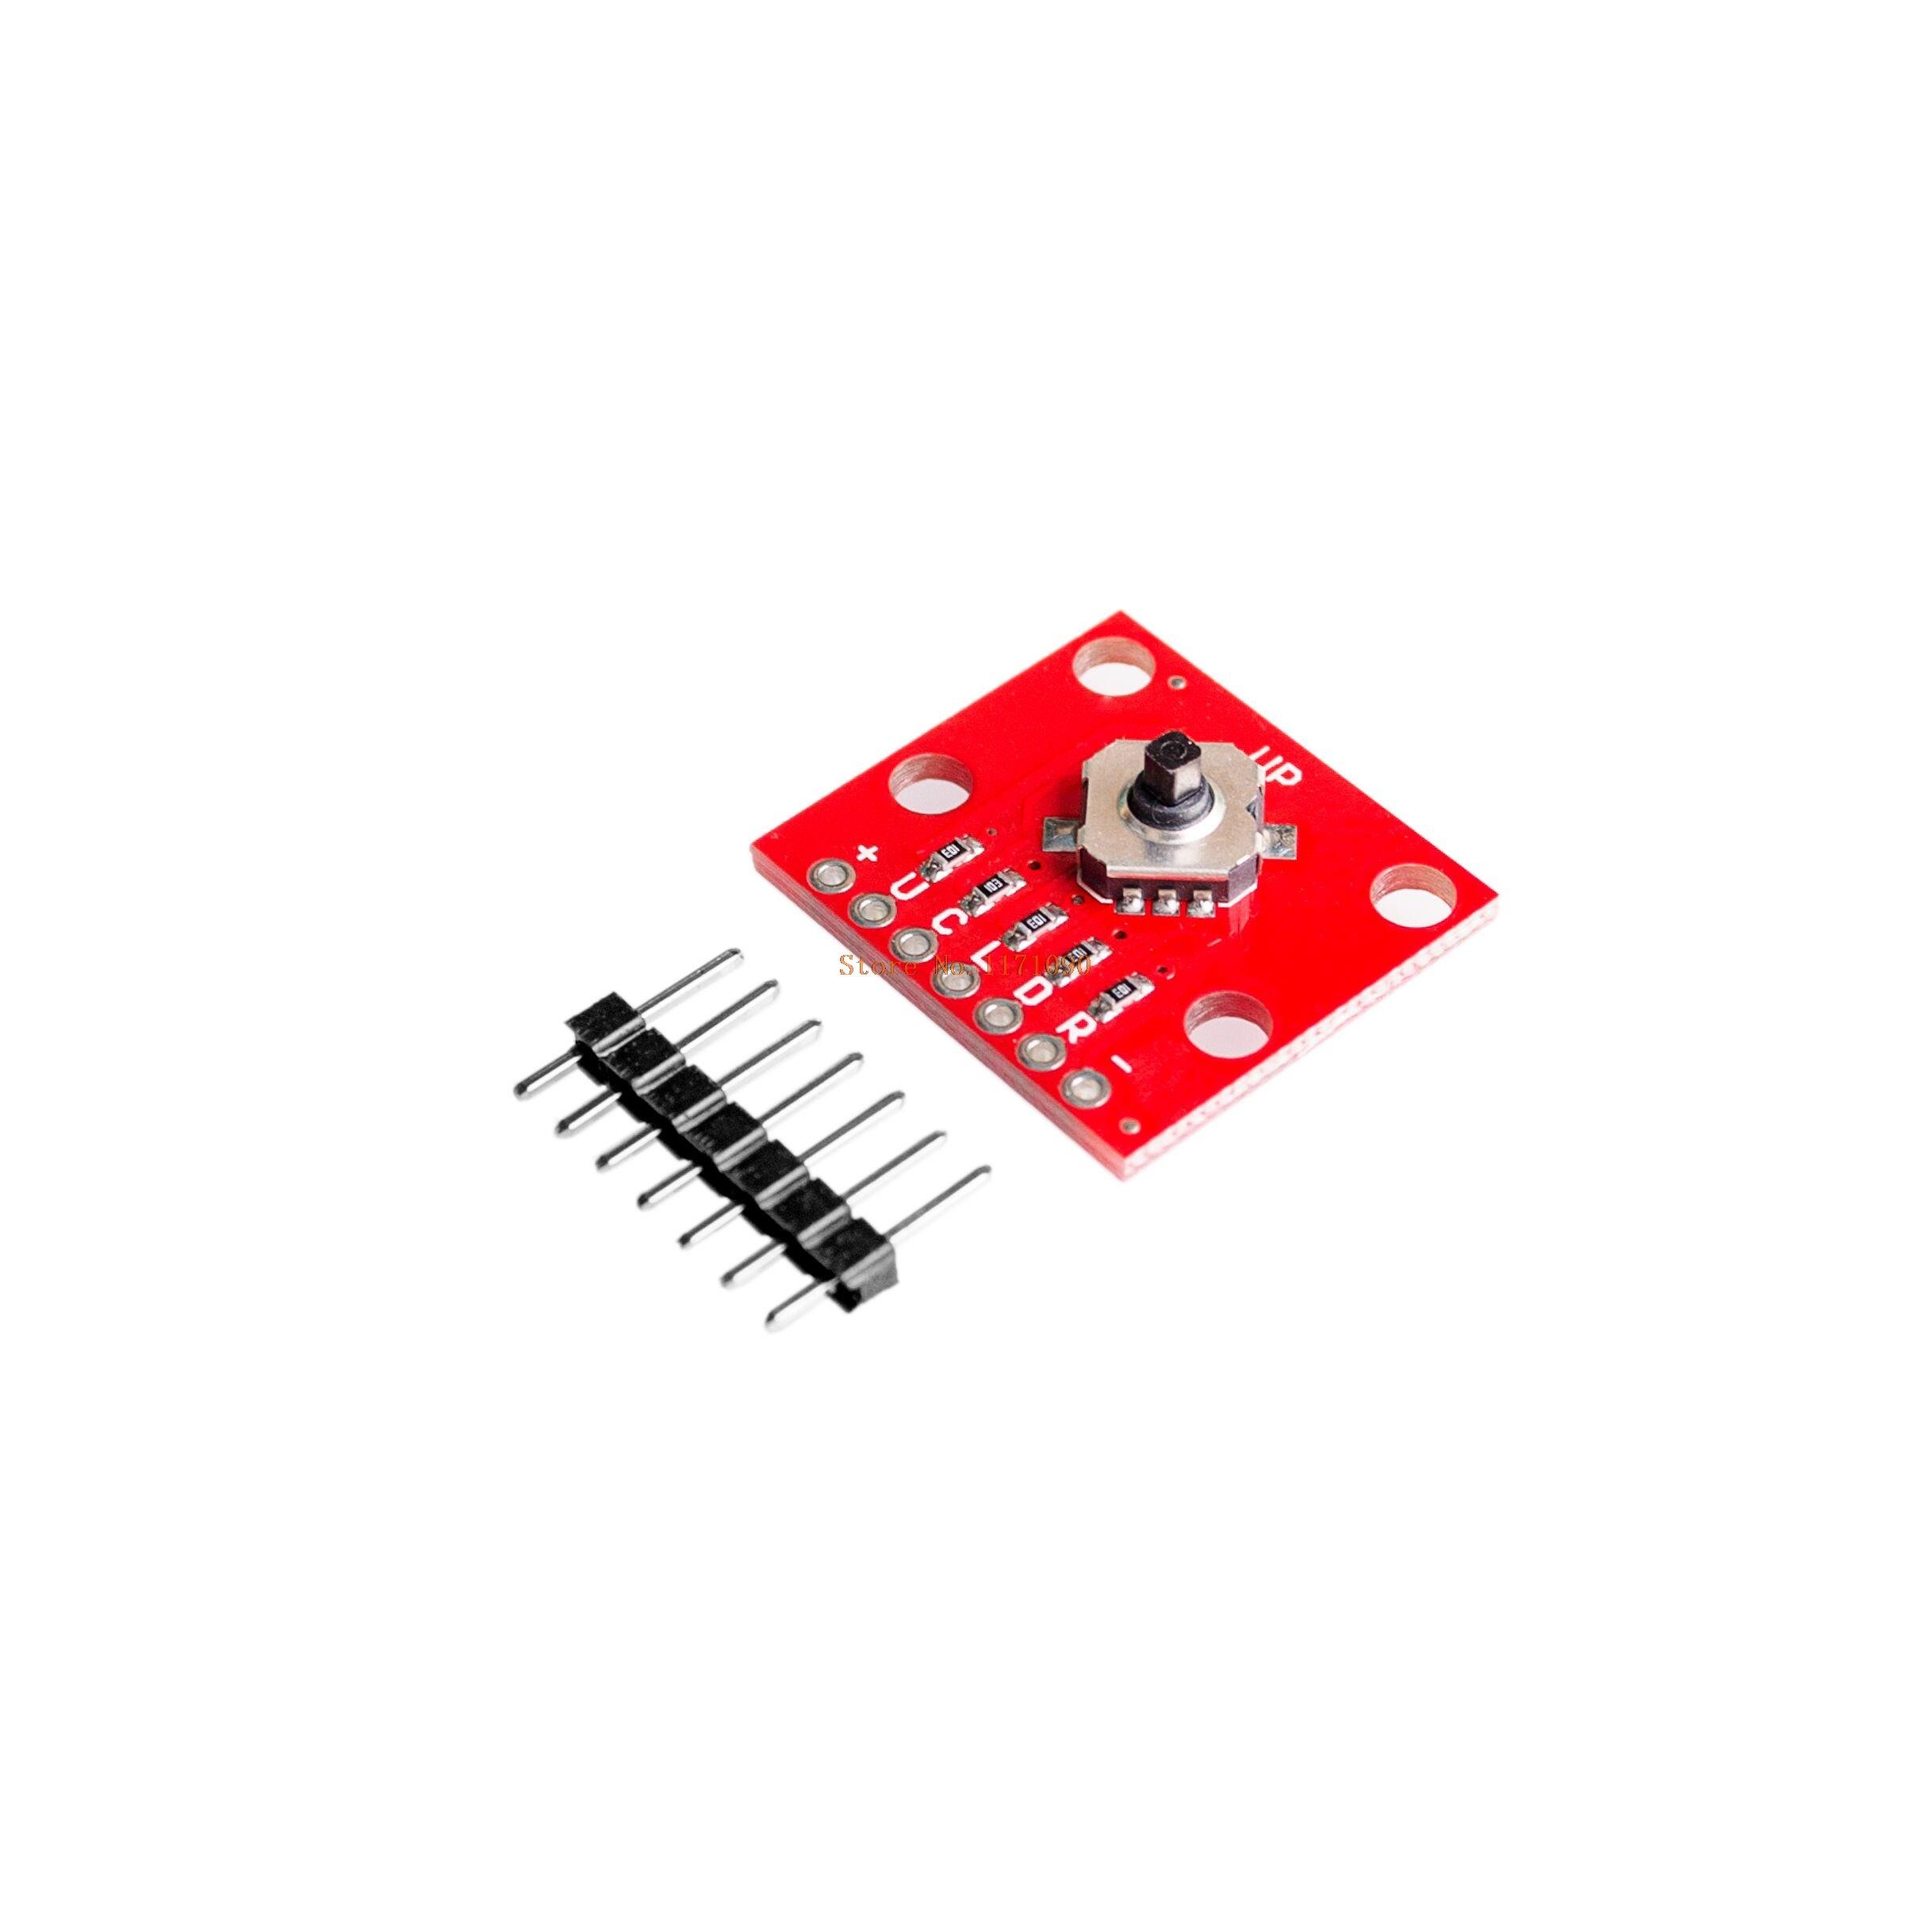 LIGHTHINKING 5pcs/lot 5-Way Tactile Switch Breakout Dev Module Converter Board for Arduino